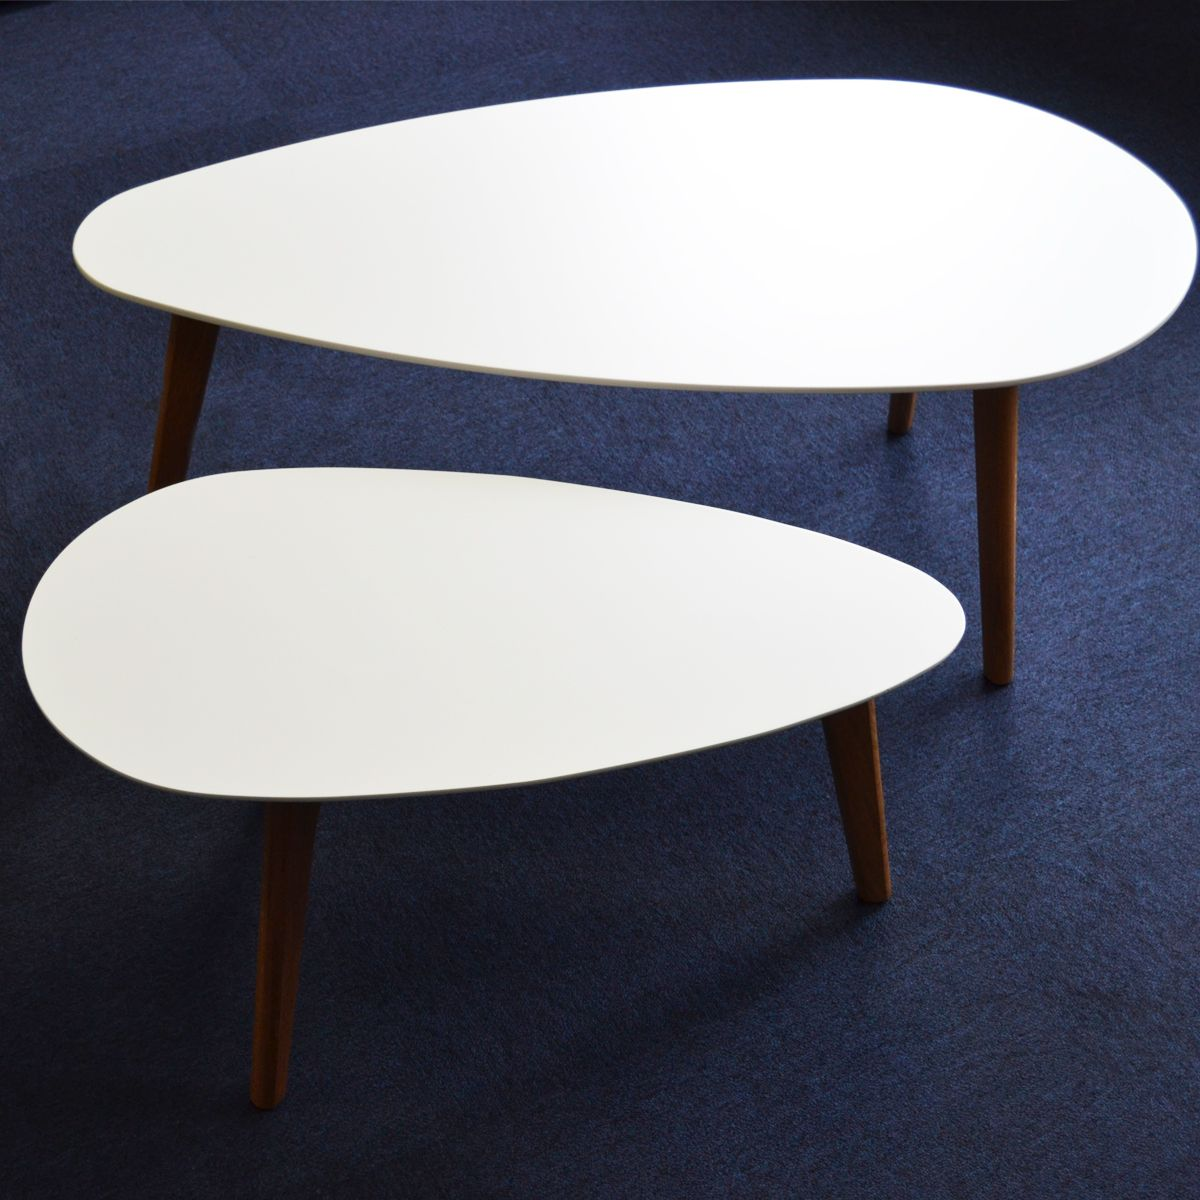 Tables basses gigognes design compas zendart design - Table basse gigogne design ...